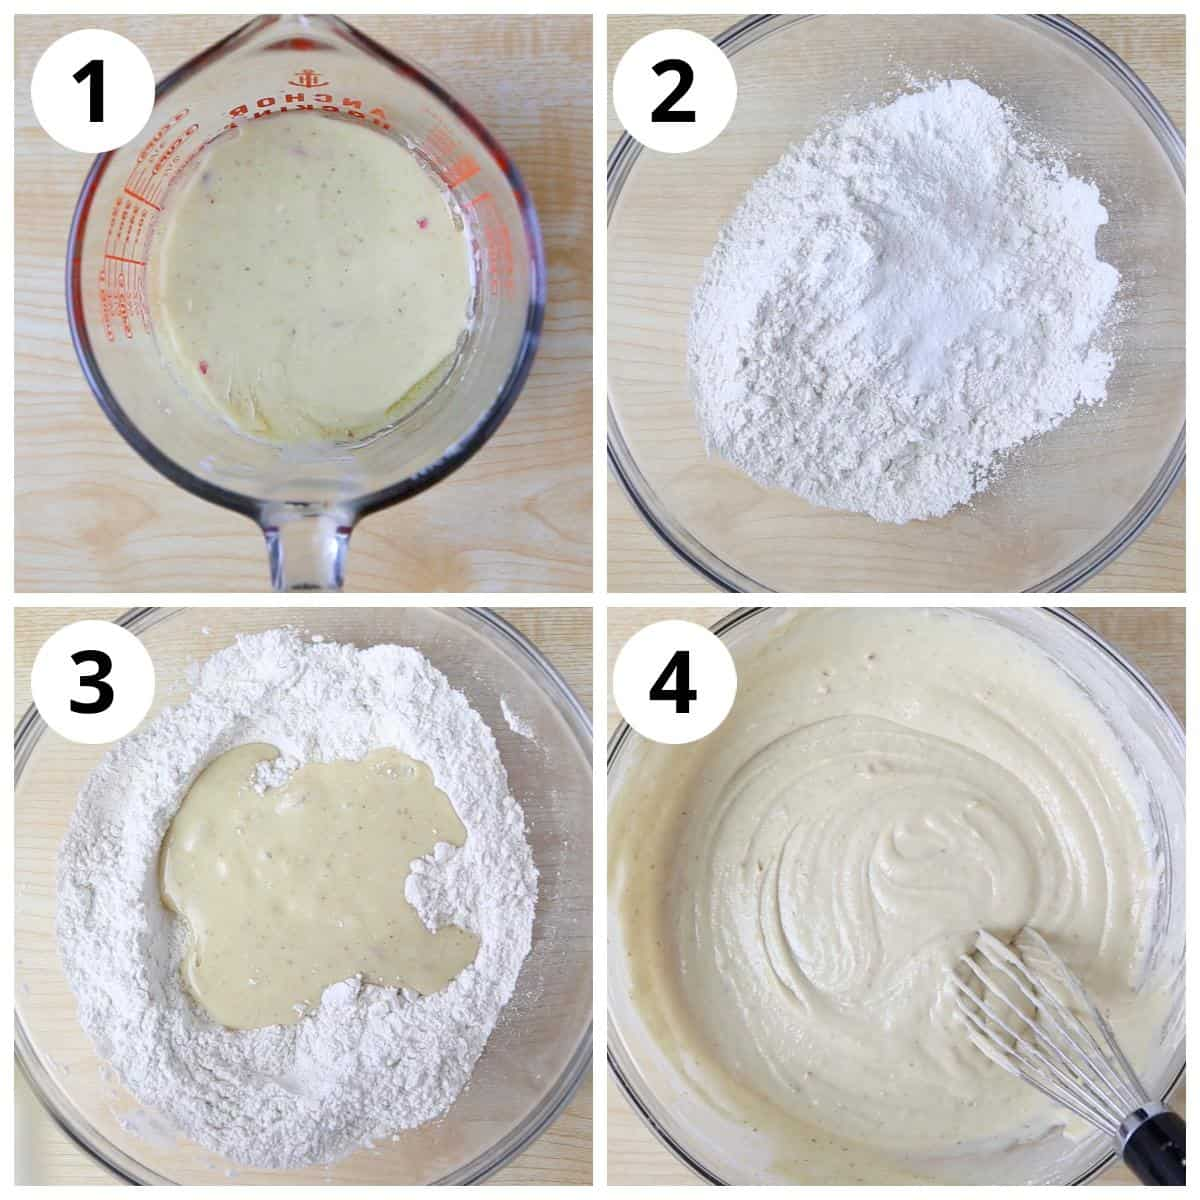 Steps to make thandai cake batter by mixing the wet and dry ingredients.